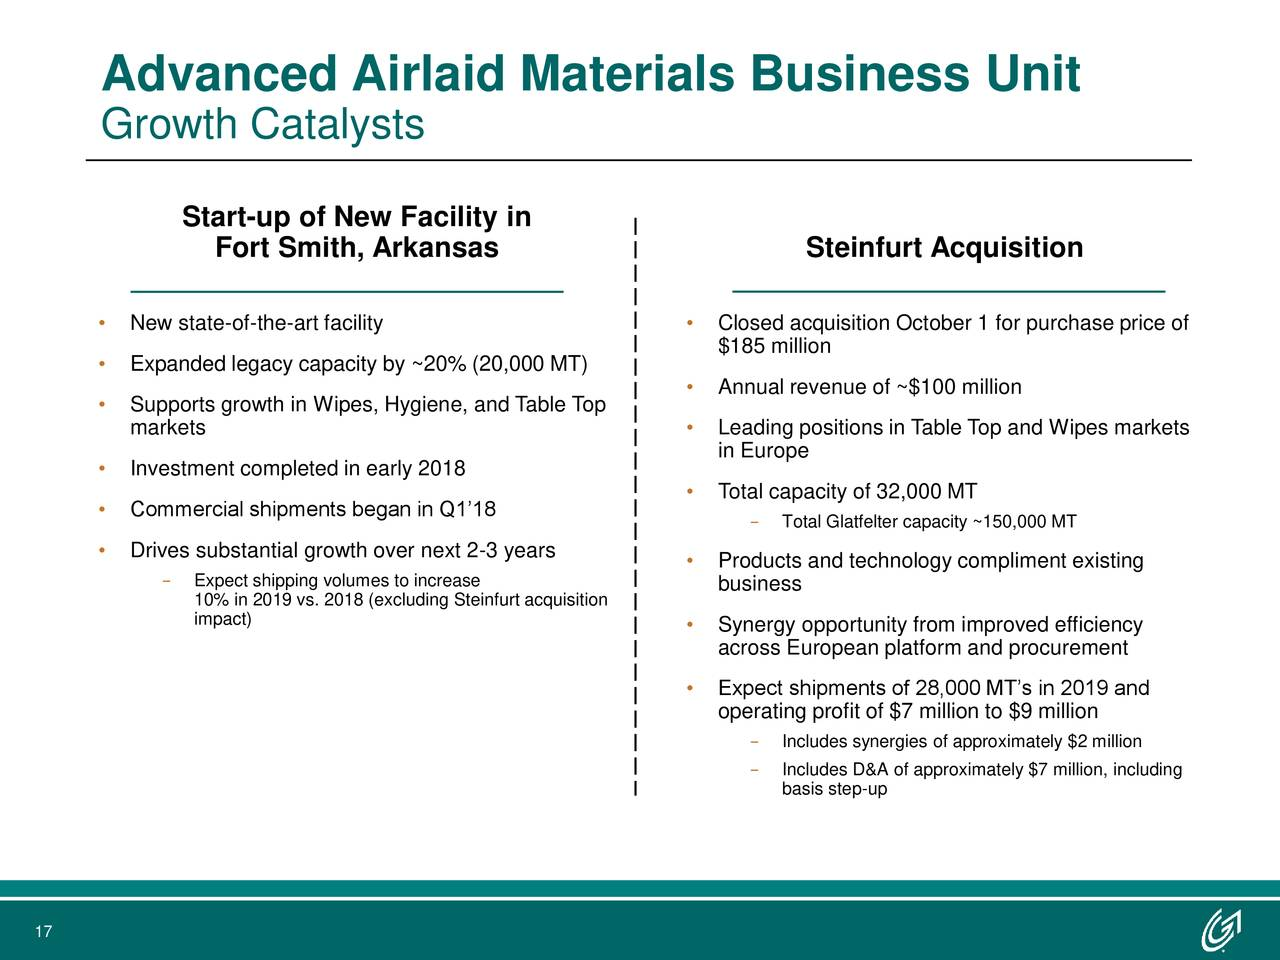 Growth Catalysts Start-up of New Facility in Fort Smith, Arkansas Steinfurt Acquisition • New state-of-the-art facility • Closed acquisition October 1 for purchase price of • Expanded legacy capacity by ~20% (20,000 MT) $185 million • Annual revenue of ~$100 million • Supports growth in Wipes, Hygiene, and Table Top markets • Leading positions in Table Top and Wipes markets in Europe • Investment completed in early 2018 • Total capacity of 32,000 MT • Commercial shipments began in Q1'18 − Total Glatfelter capacity ~150,000 MT • Drives substantial growth over next 2-3 years − Expect shipping volumes to increase • Products and technology compliment existing 10% in 2019 vs. 2018 (excluding Steinfurt acquisition business impact) • Synergy opportunity from improved efficiency across European platform and procurement • Expect shipments of 28,000 MT's in 2019 and operating profit of $7 million to $9 million − Includes synergies of approximately $2 million − Includes D&A of approximately $7 million, including basis step-up 17